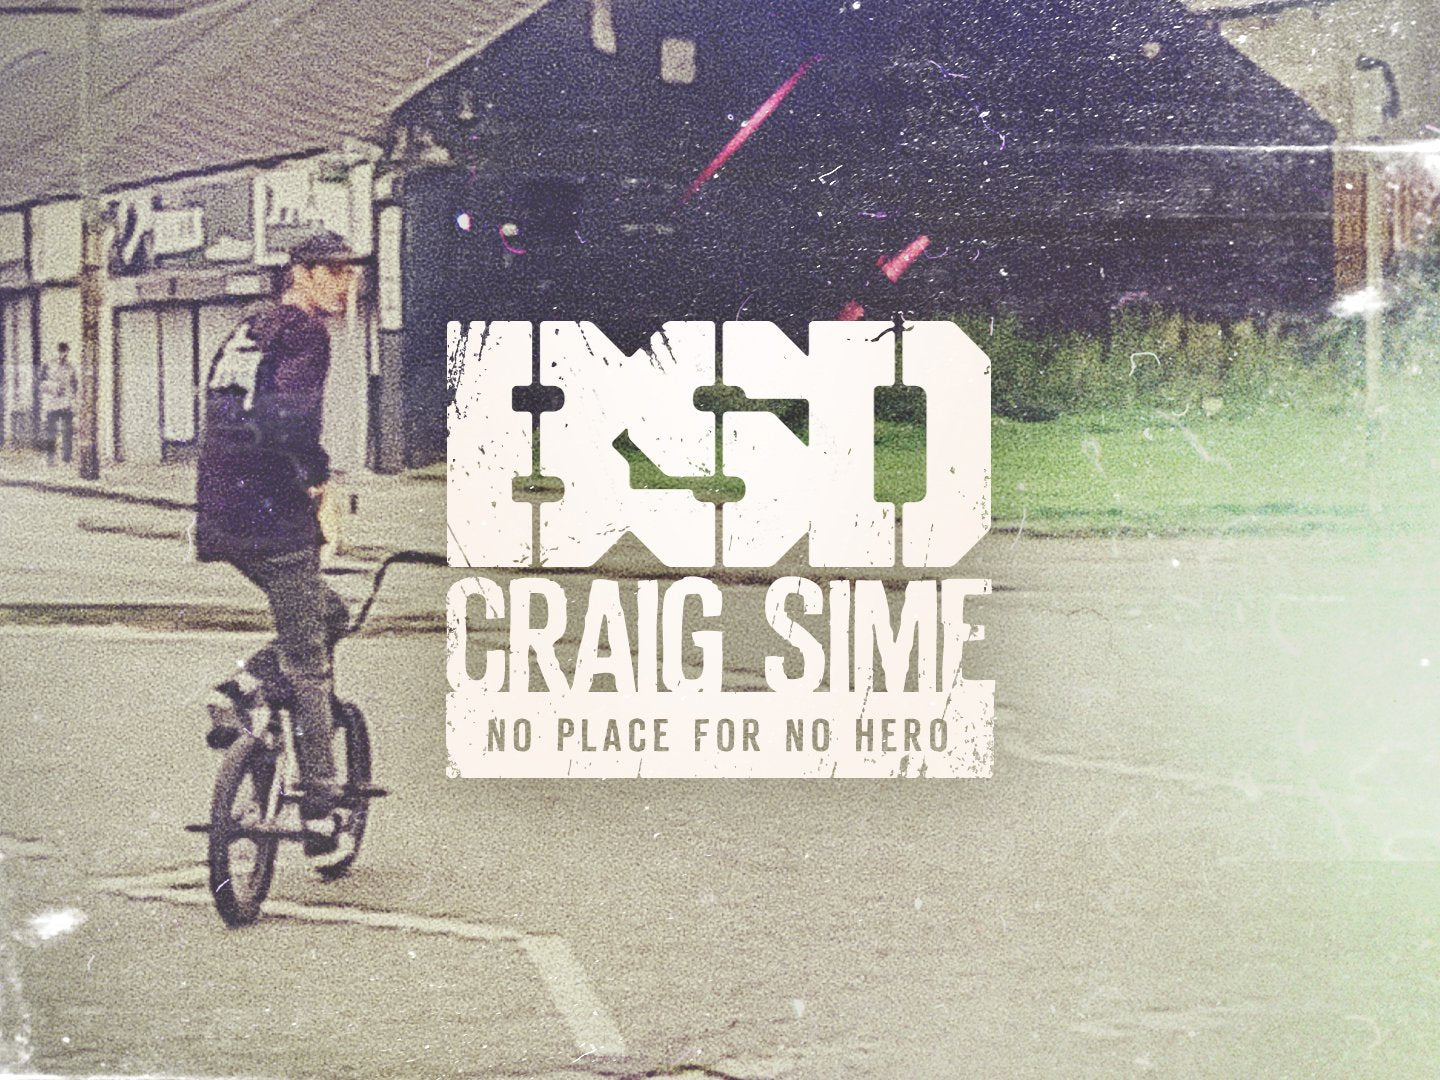 Craig Sime - No Place for No Hero